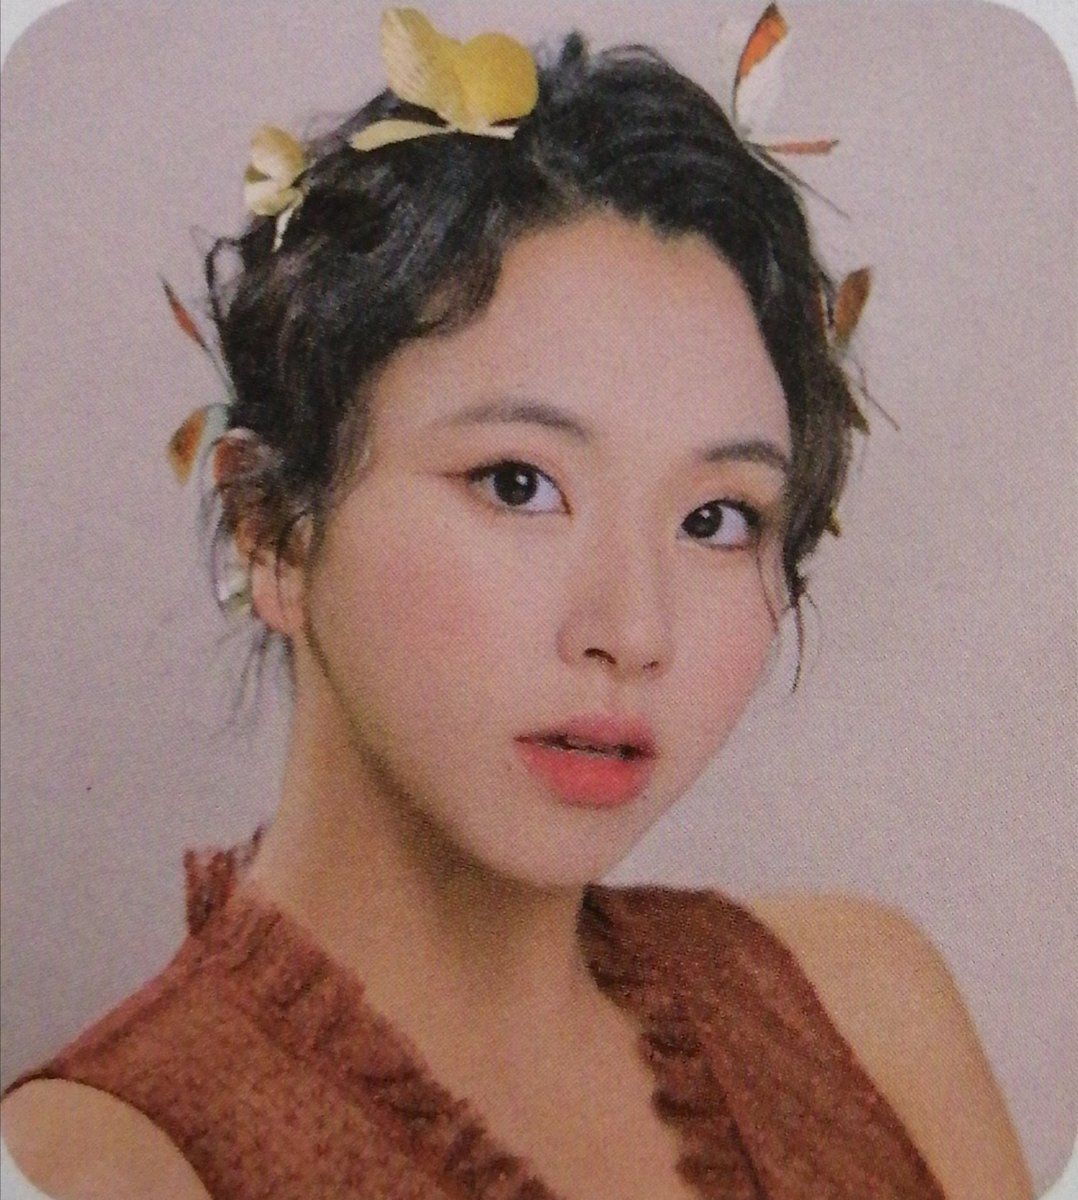 """TWICE 2020 Japan Seasons Greetings """"Illusion"""" Chaeyoung (3)  #Chaeyoung #채영"""